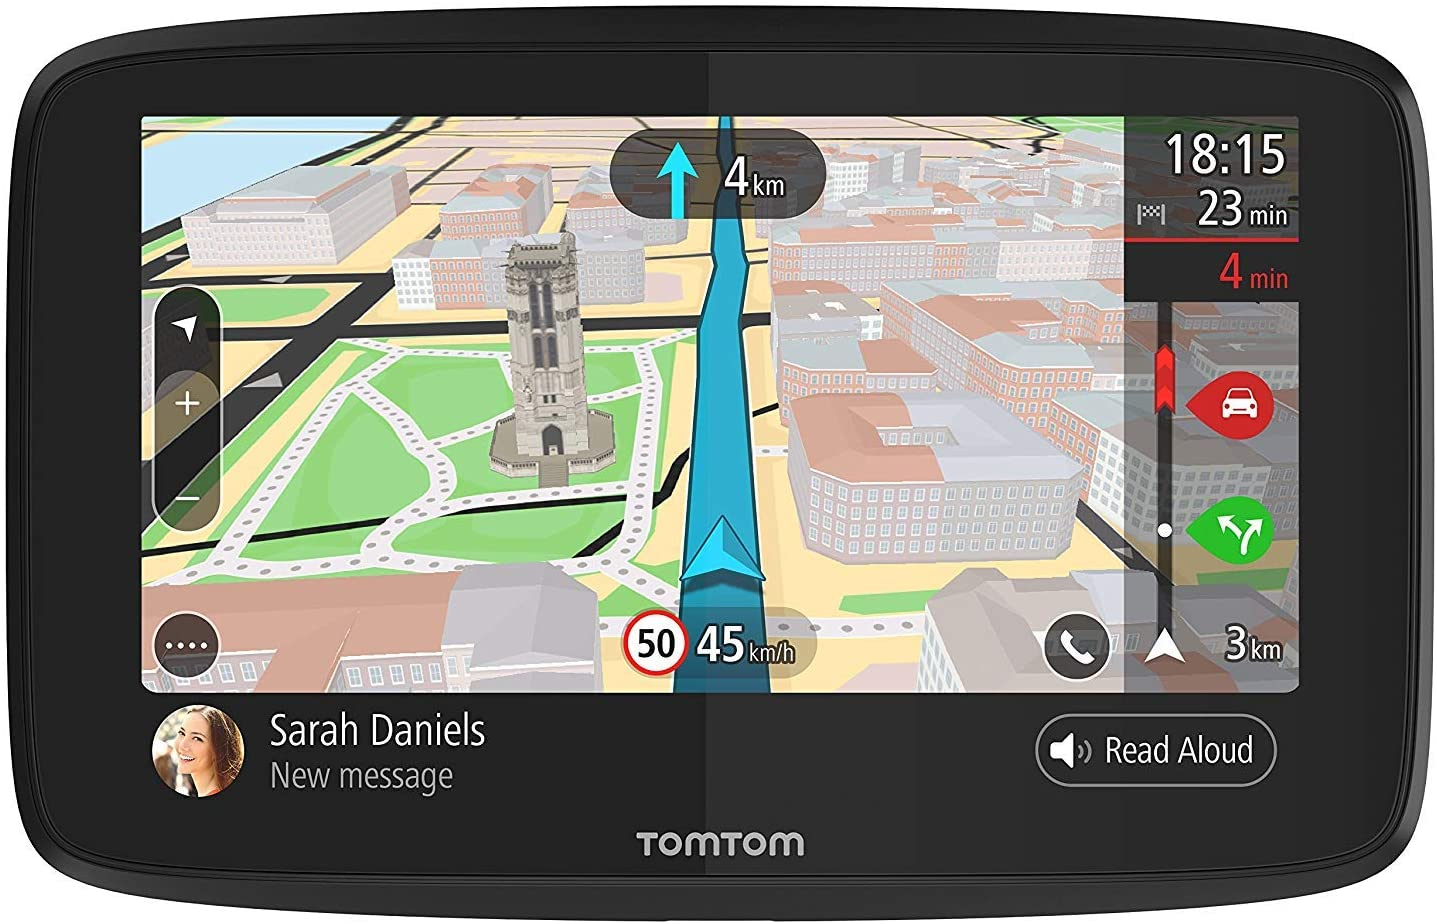 TomTom Go 52 5-Inch GPS Navigation Device with Wi-Fi, Real Time Traffic, Free Maps of North America, Siri and Google Now Compatibility, Hands-Free Calling and Smartphone Messaging